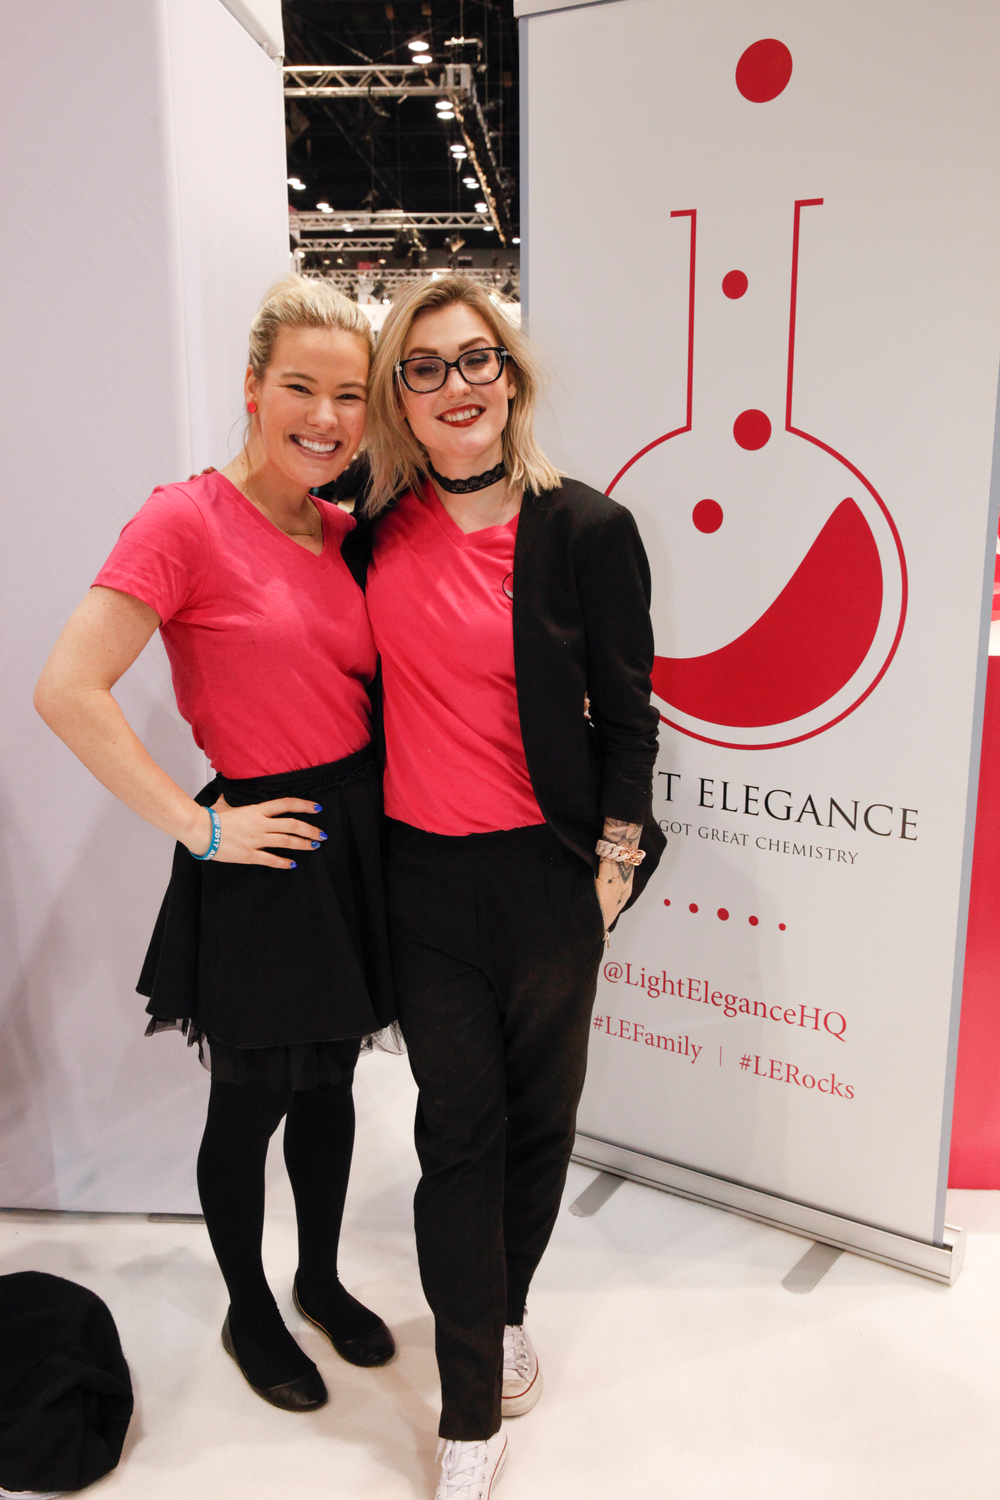 """<p>Light Elegance's Lexy McConnell and educator Celina Ryden. <a href=""""http://www.nailsmag.com/video/118034/light-elegances-mannequin-challenge-at-abs-chicago-2017"""">Check out the Mannequin Challenge video they filmed at the show! (link)</a></p>"""